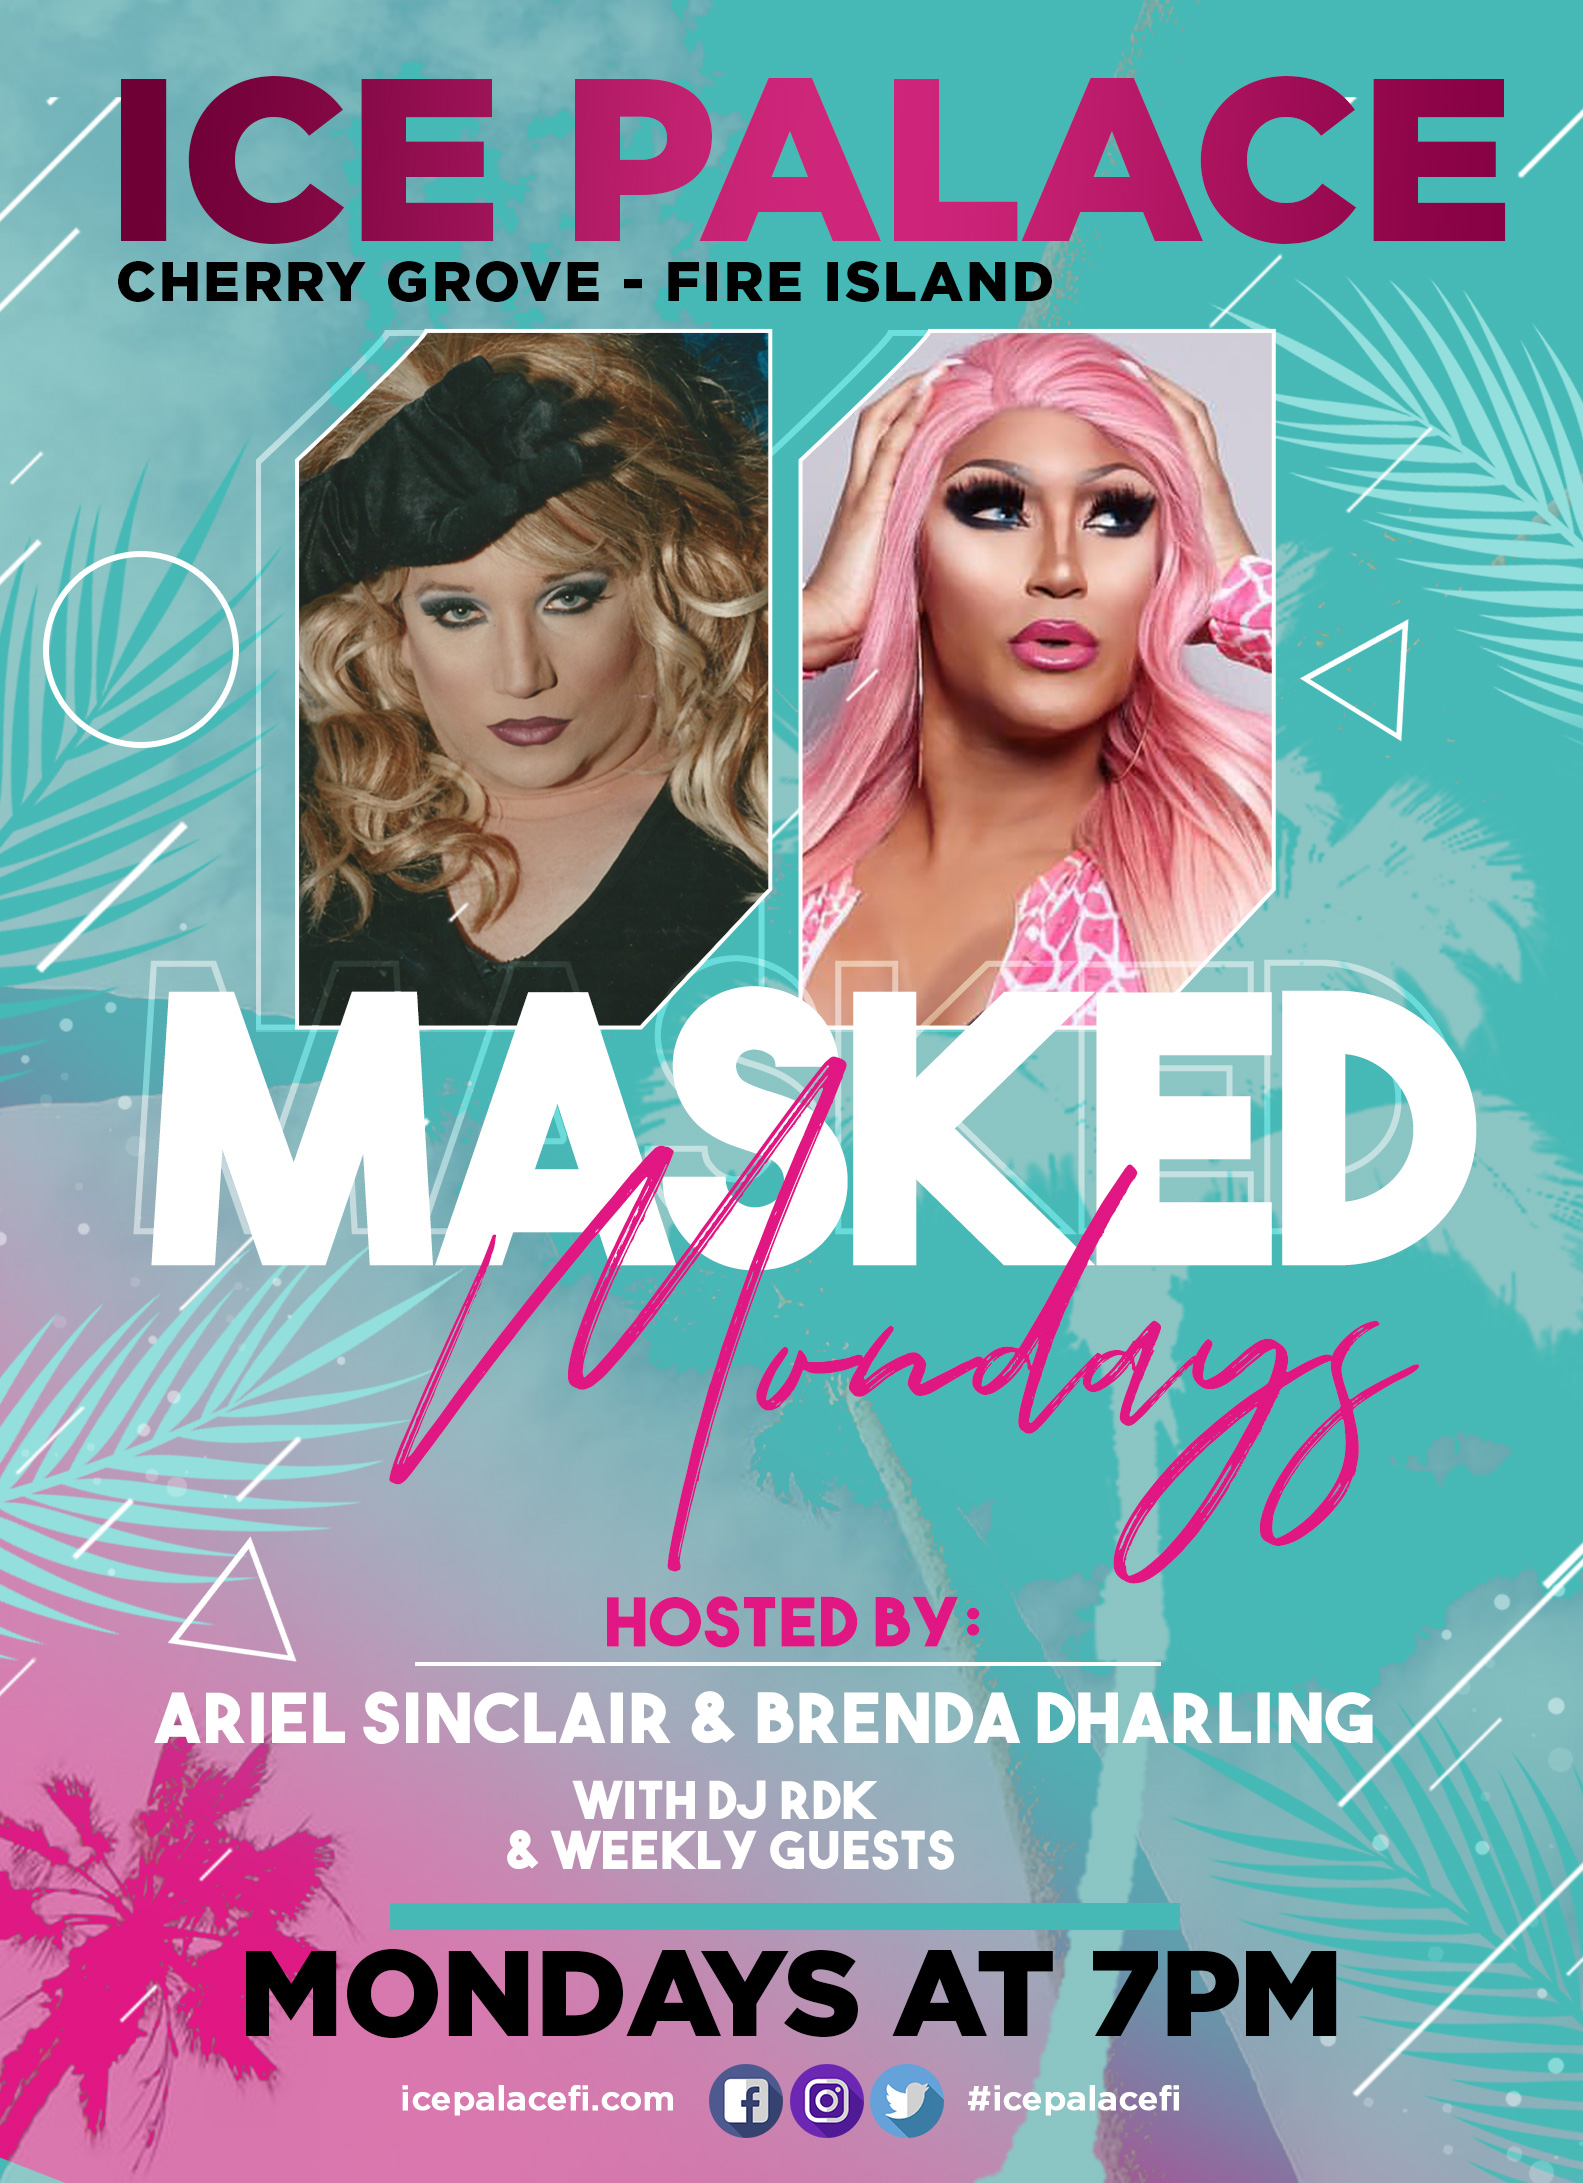 masked mondays at 7pm hosted by Ariel Sinclair and Brenda Dharling